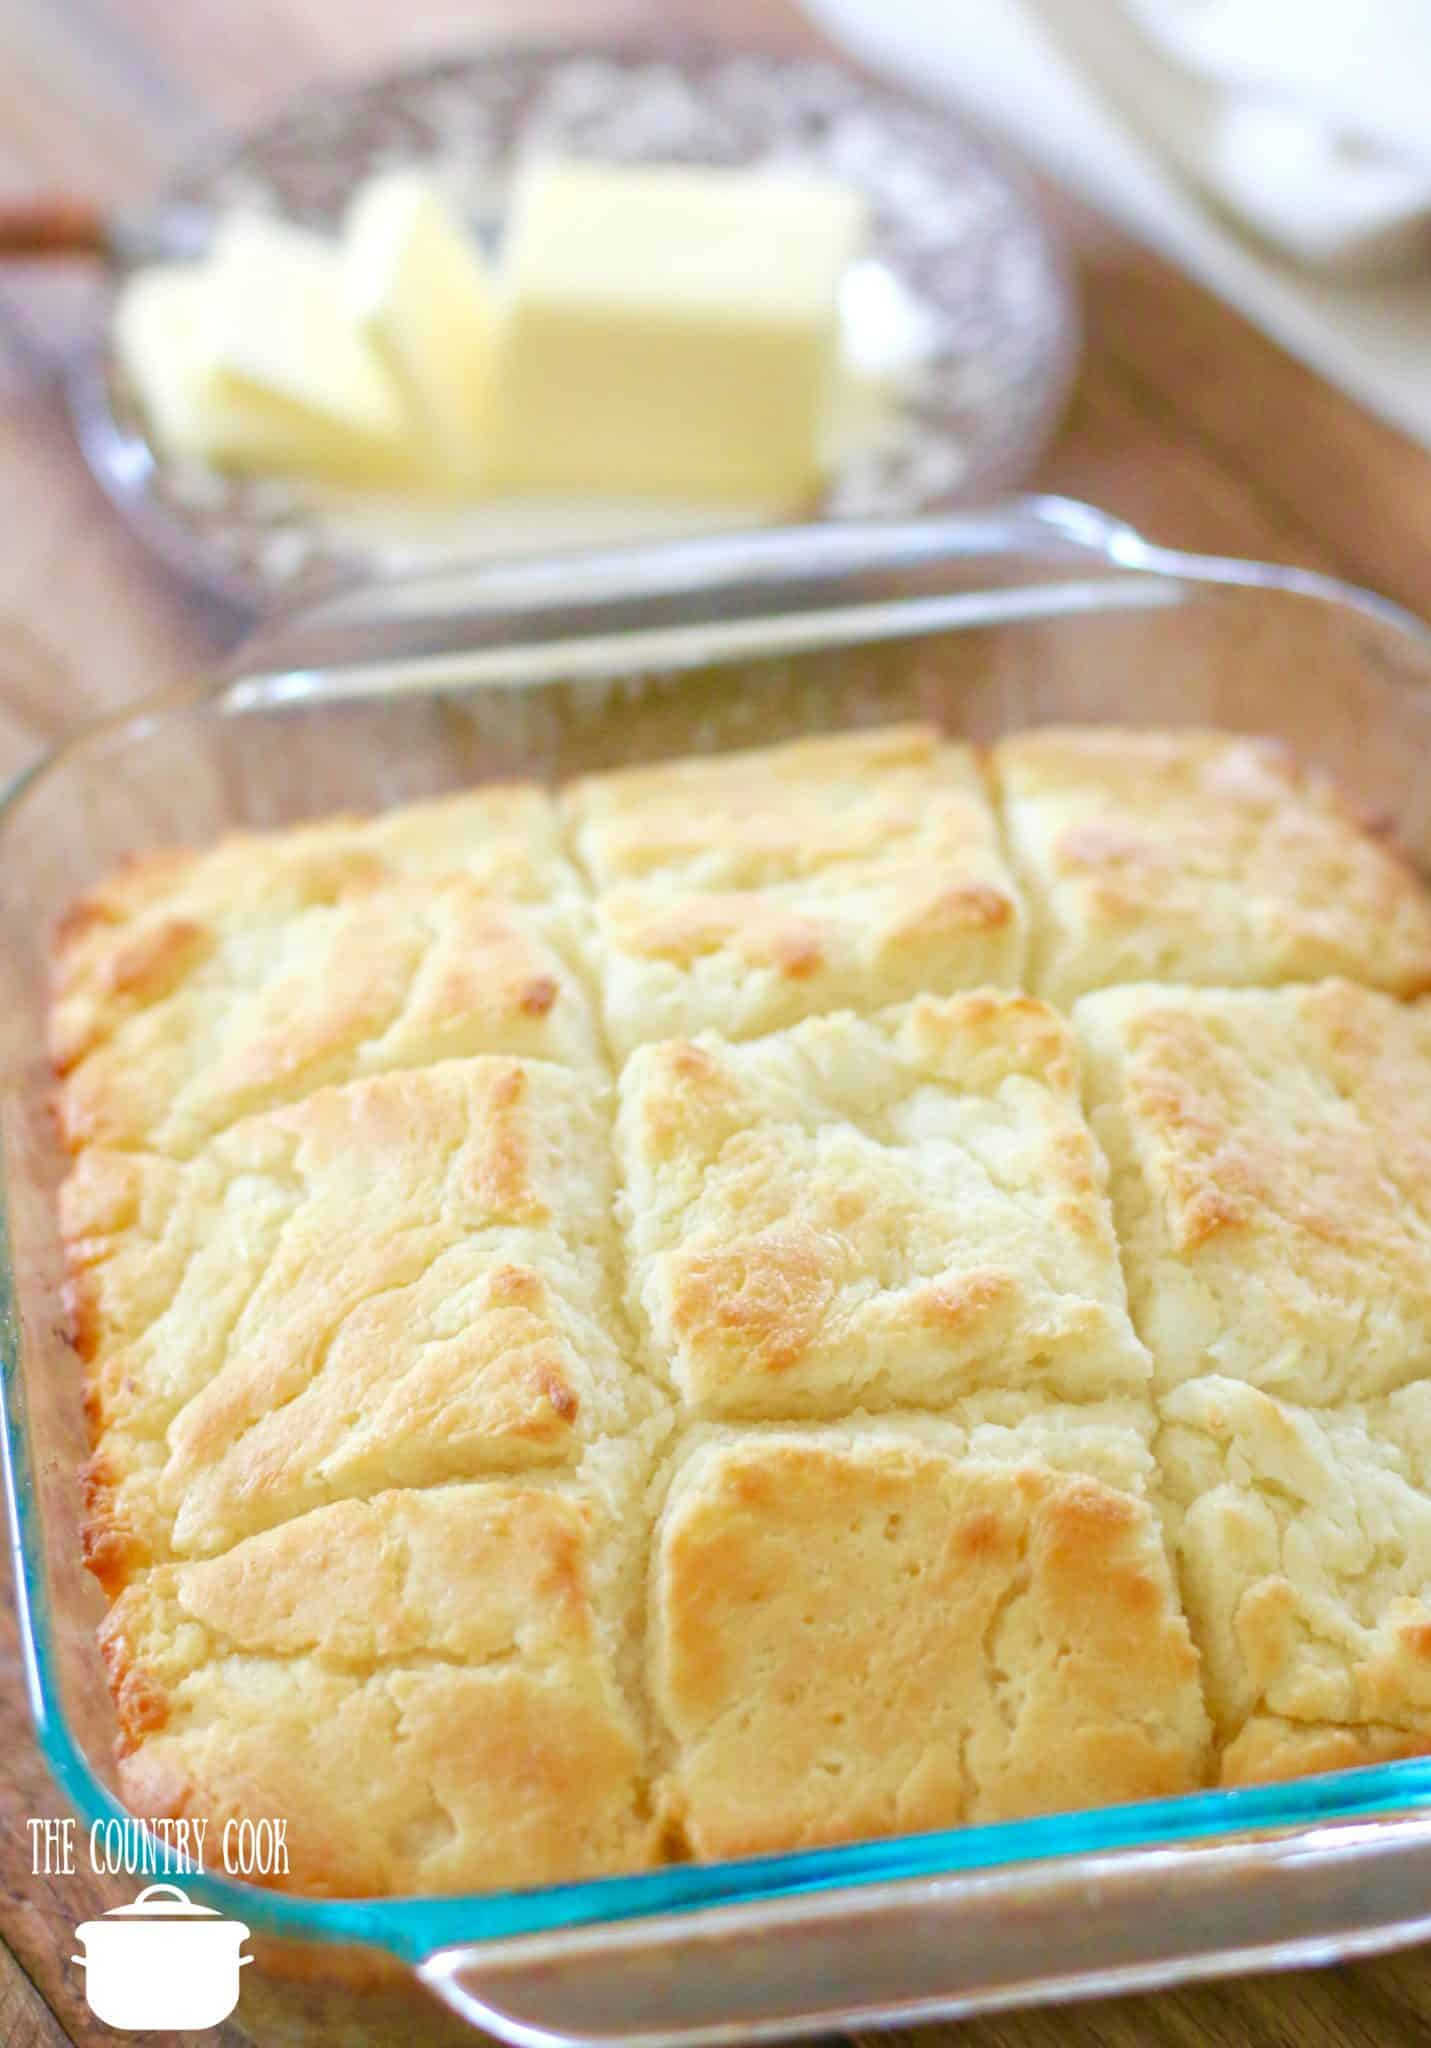 Butter Dip Buttermilk Biscuits recipe, no biscuit cutters, in a square Puree baking dish with sliced butter in the background.